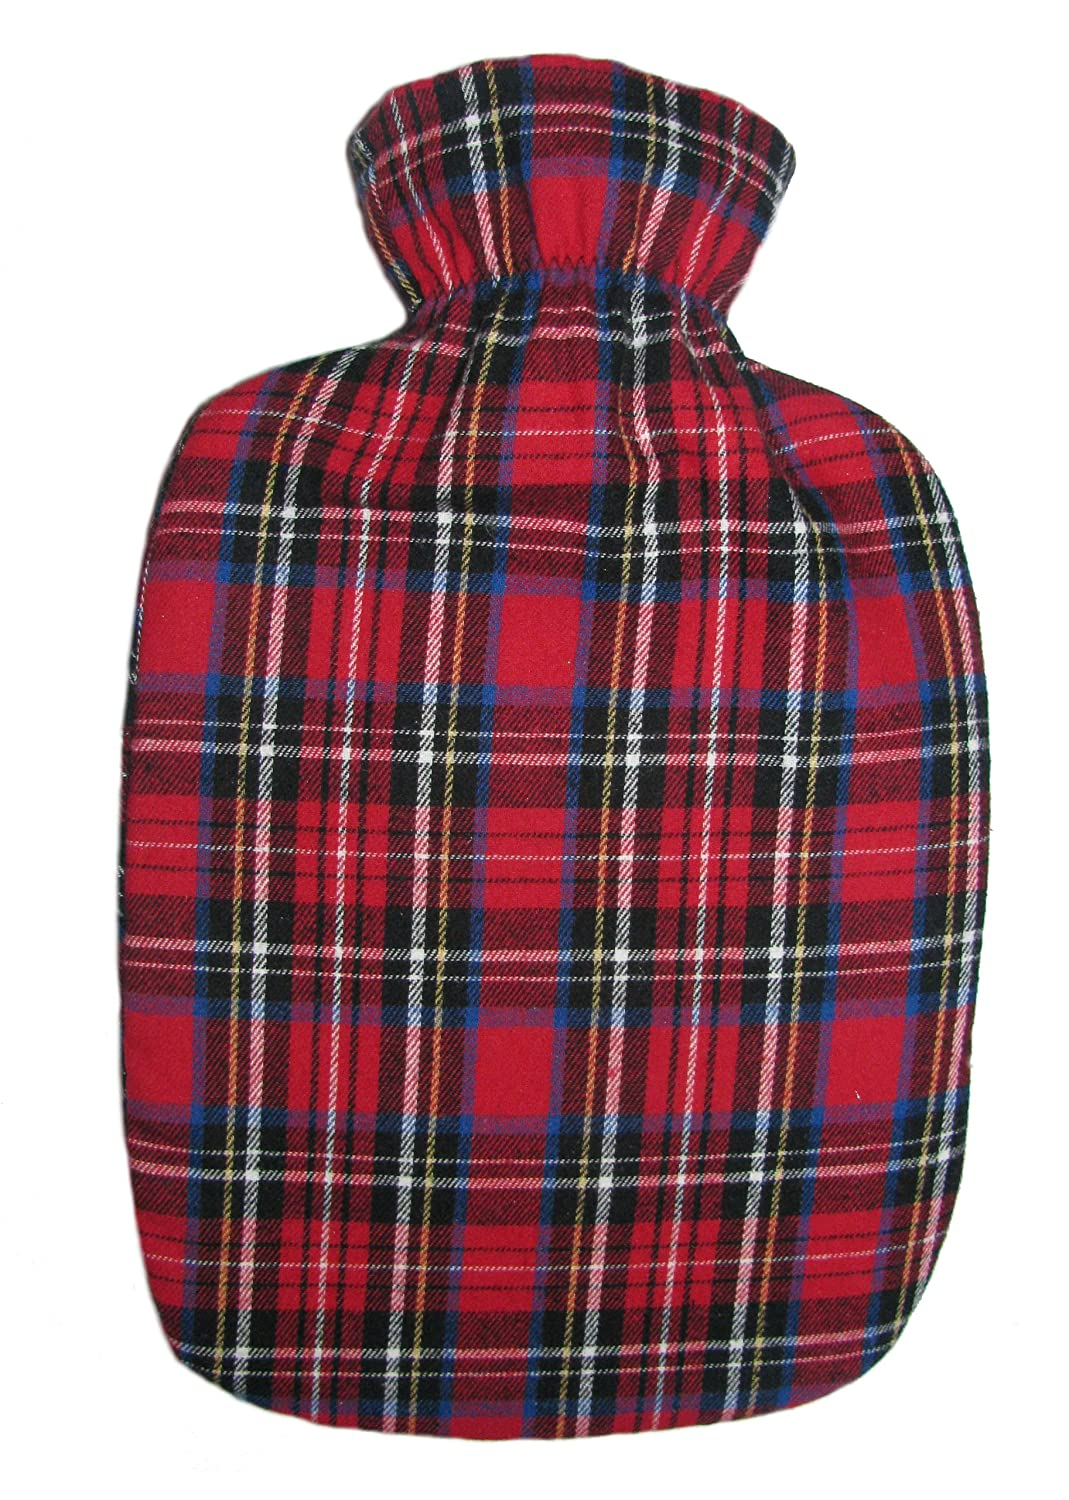 Amazon.com: Warm Tradition Red Tartan Cotton Flannel Hot Water ...